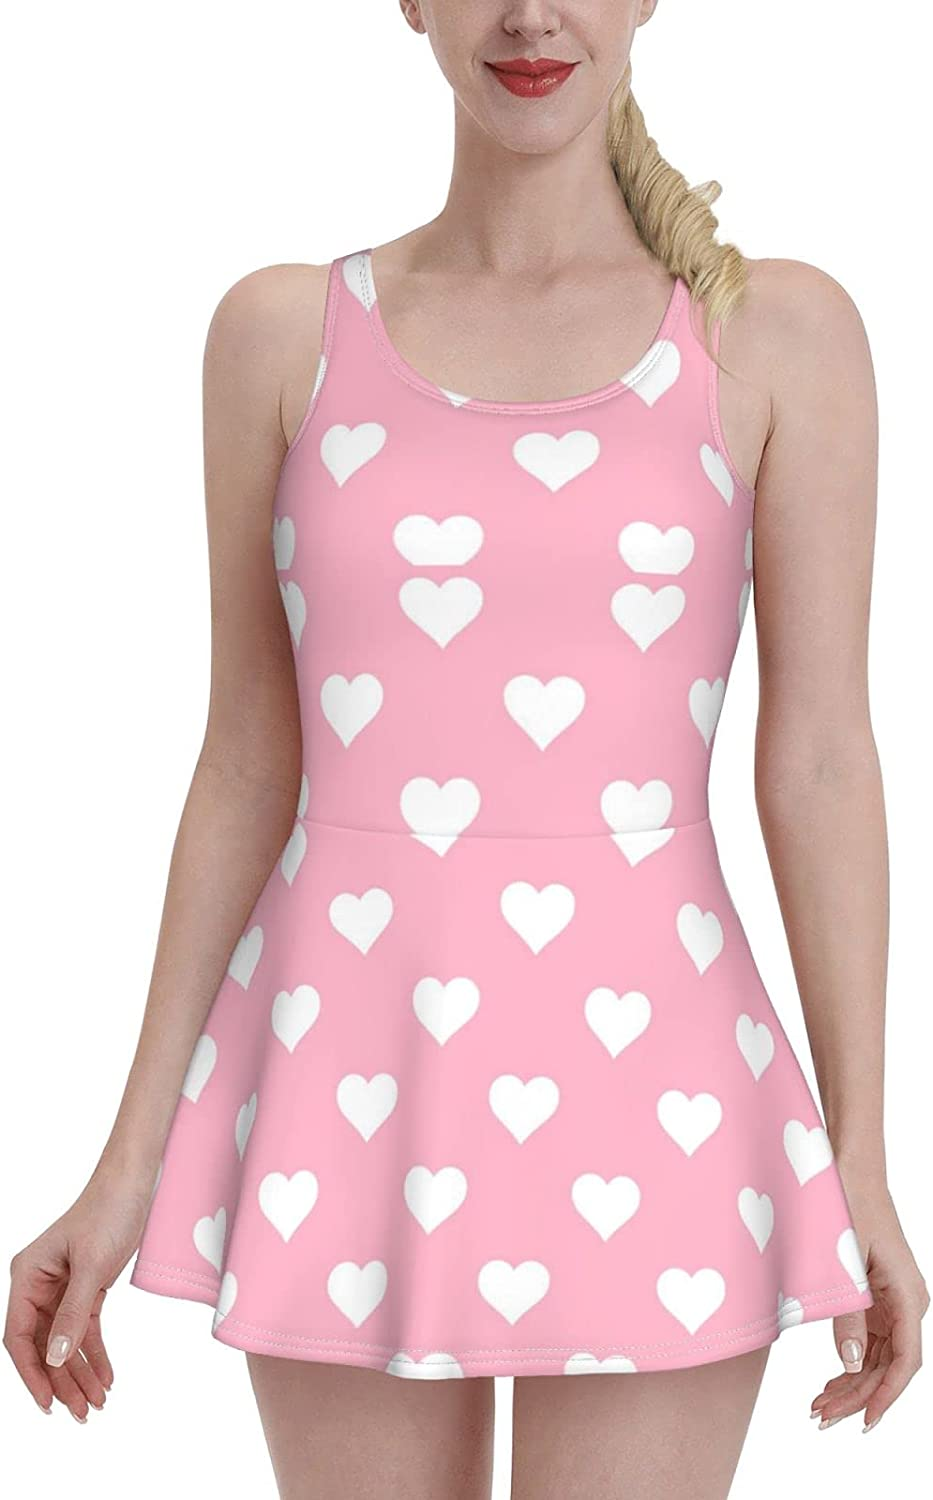 Cash special price Pink Kitten Ladies Ruffled One-Piece with Swimsuit Cheap mail order shopping St Adjustable